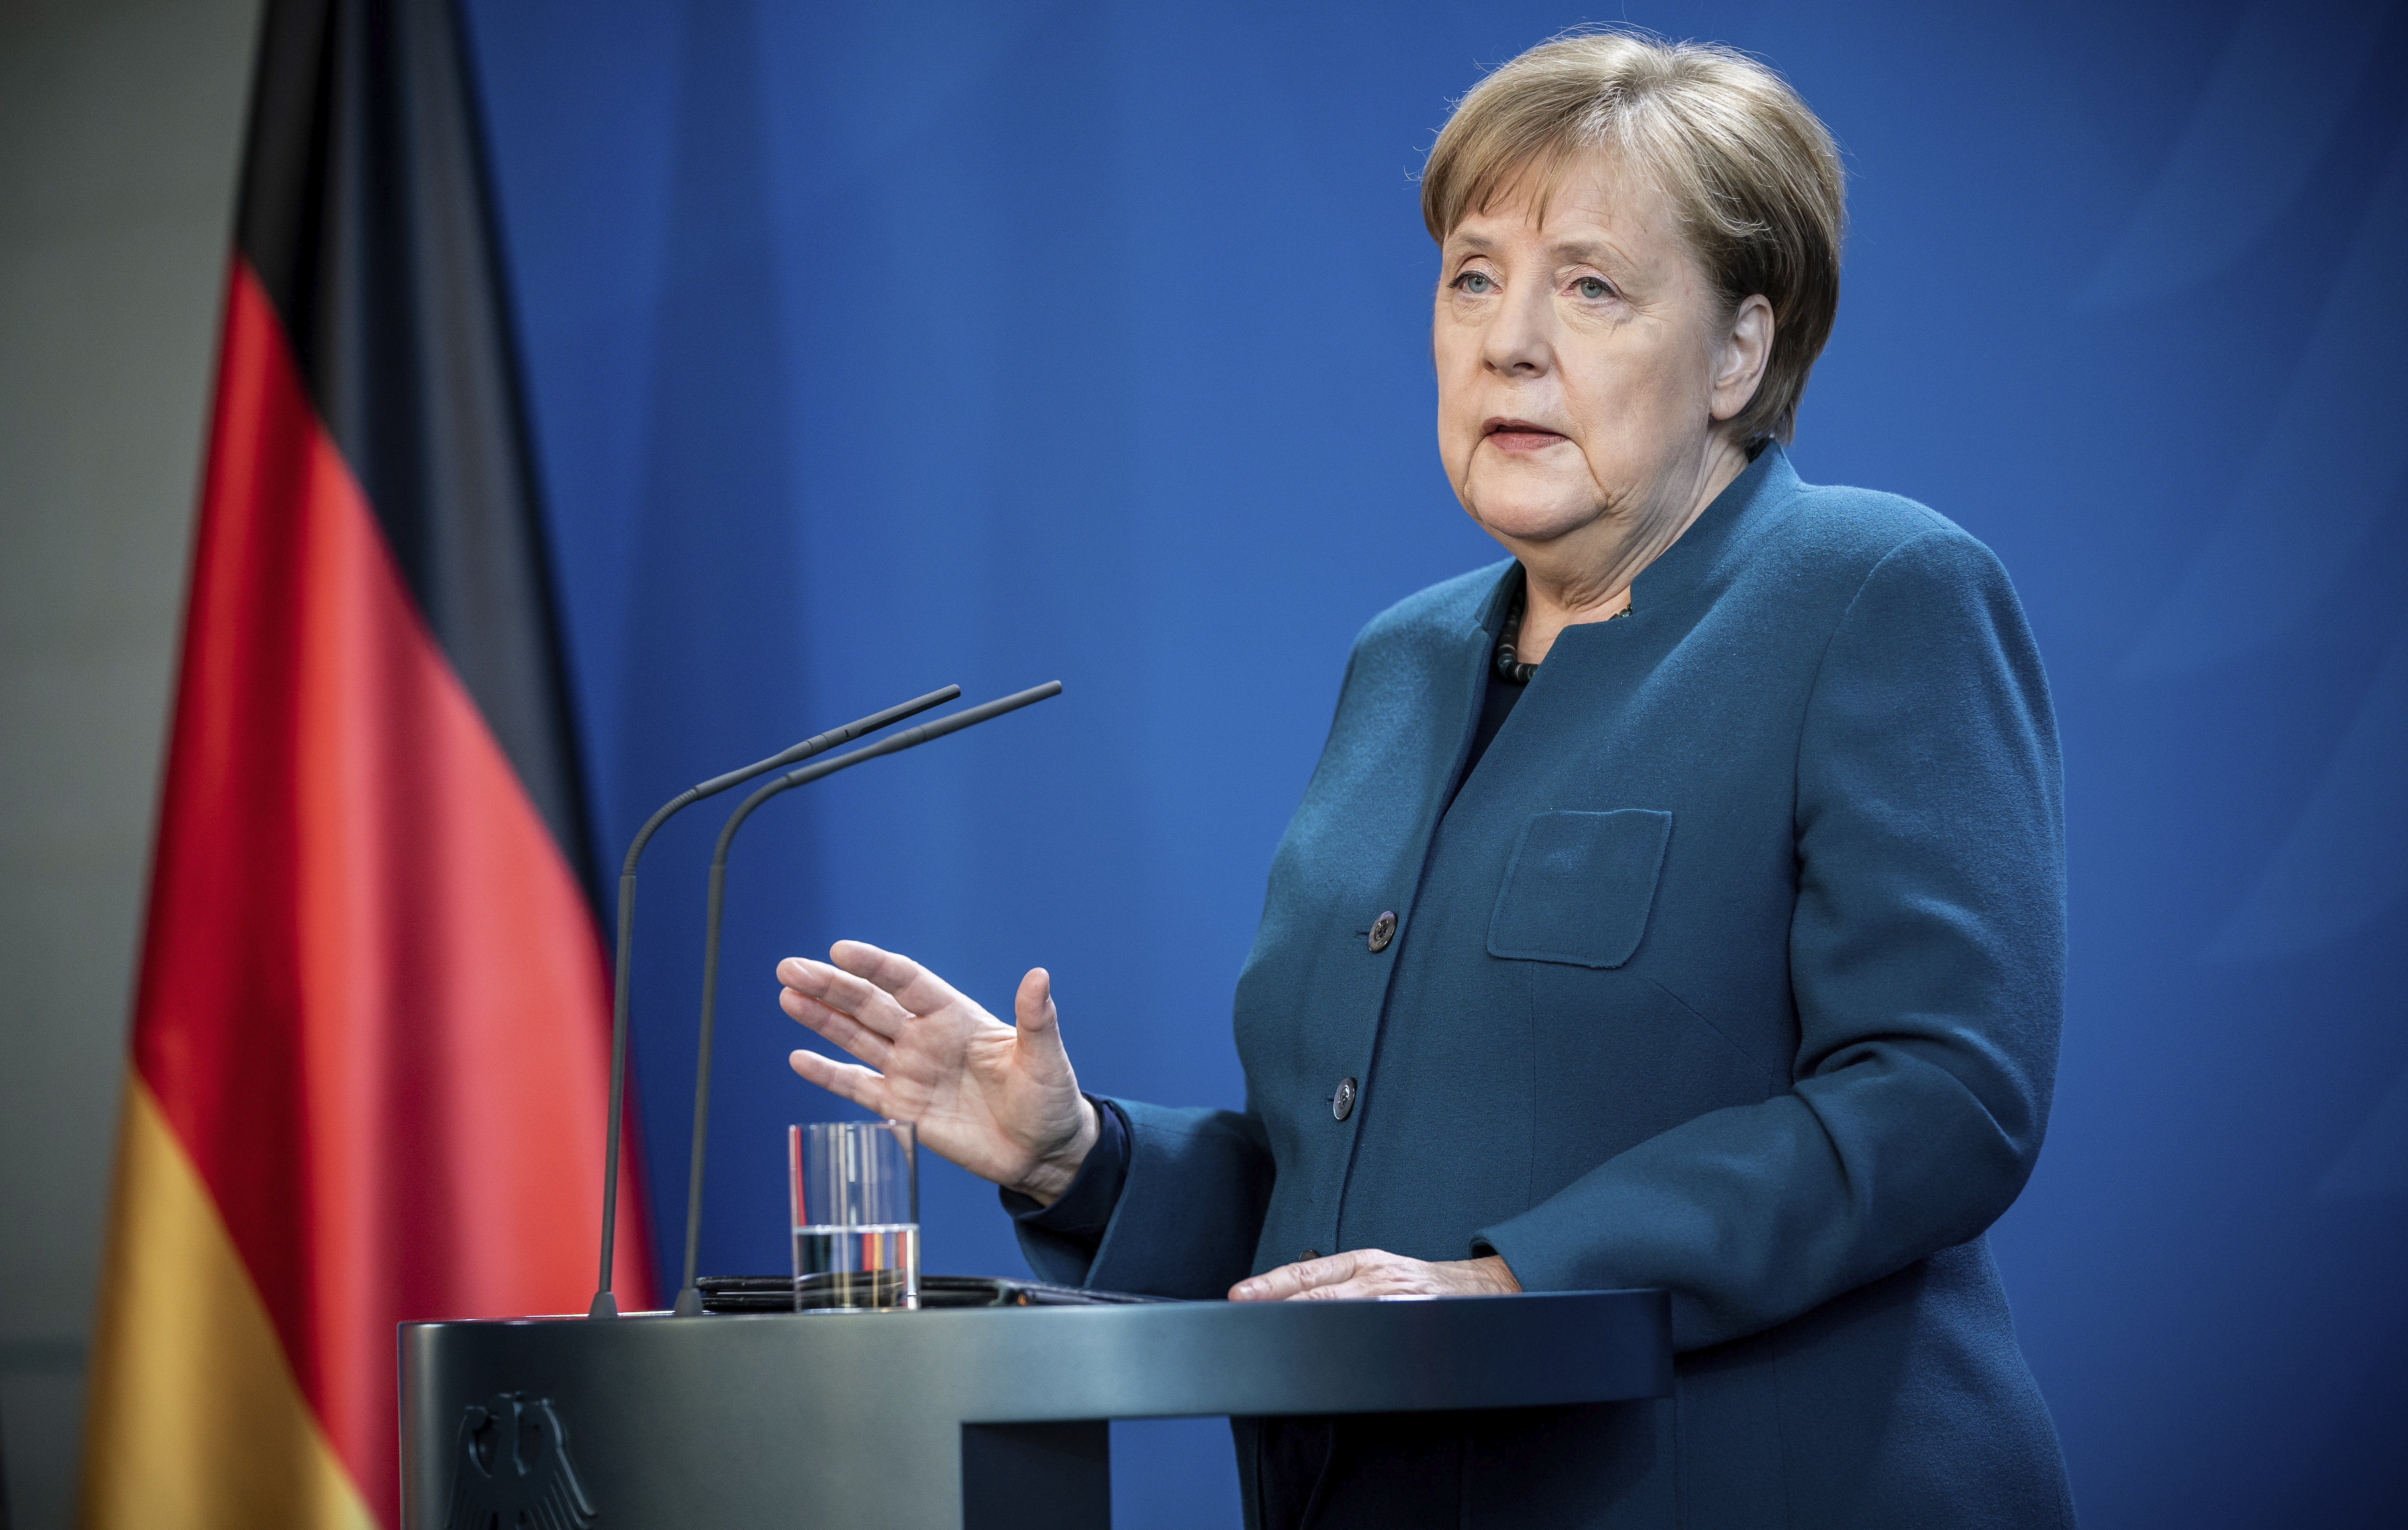 German Chancellor Angela Merkel speaks at a press conference about coronavirus, in Berlin, on March 22, 2020.